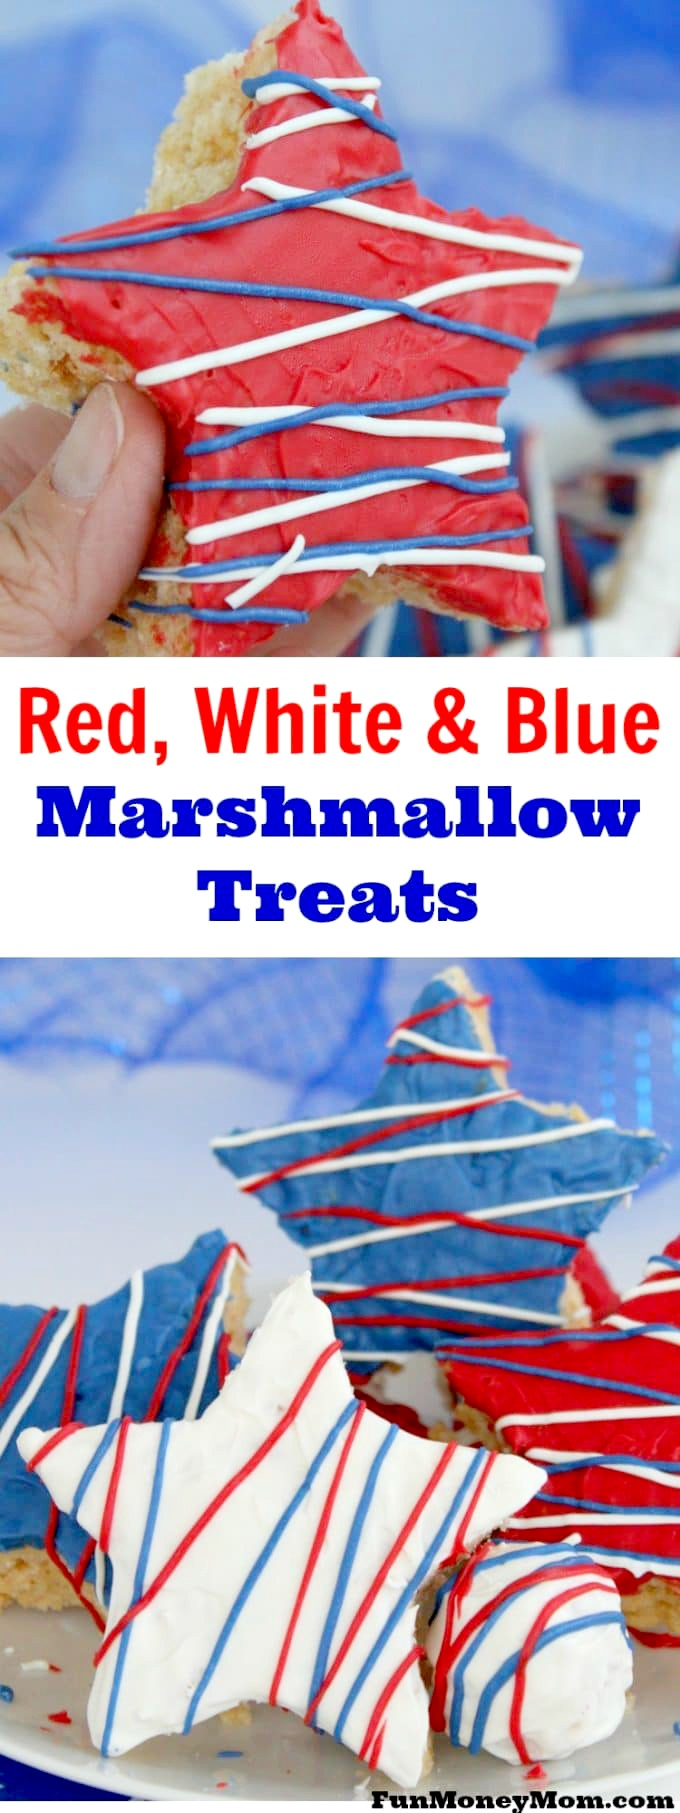 Looking for a delicious treat for your summer party? These red, white & blue marshmallow treats are perfect for Memorial Day, Fourth of July or just anytime you want to serve a fun patriotic food.